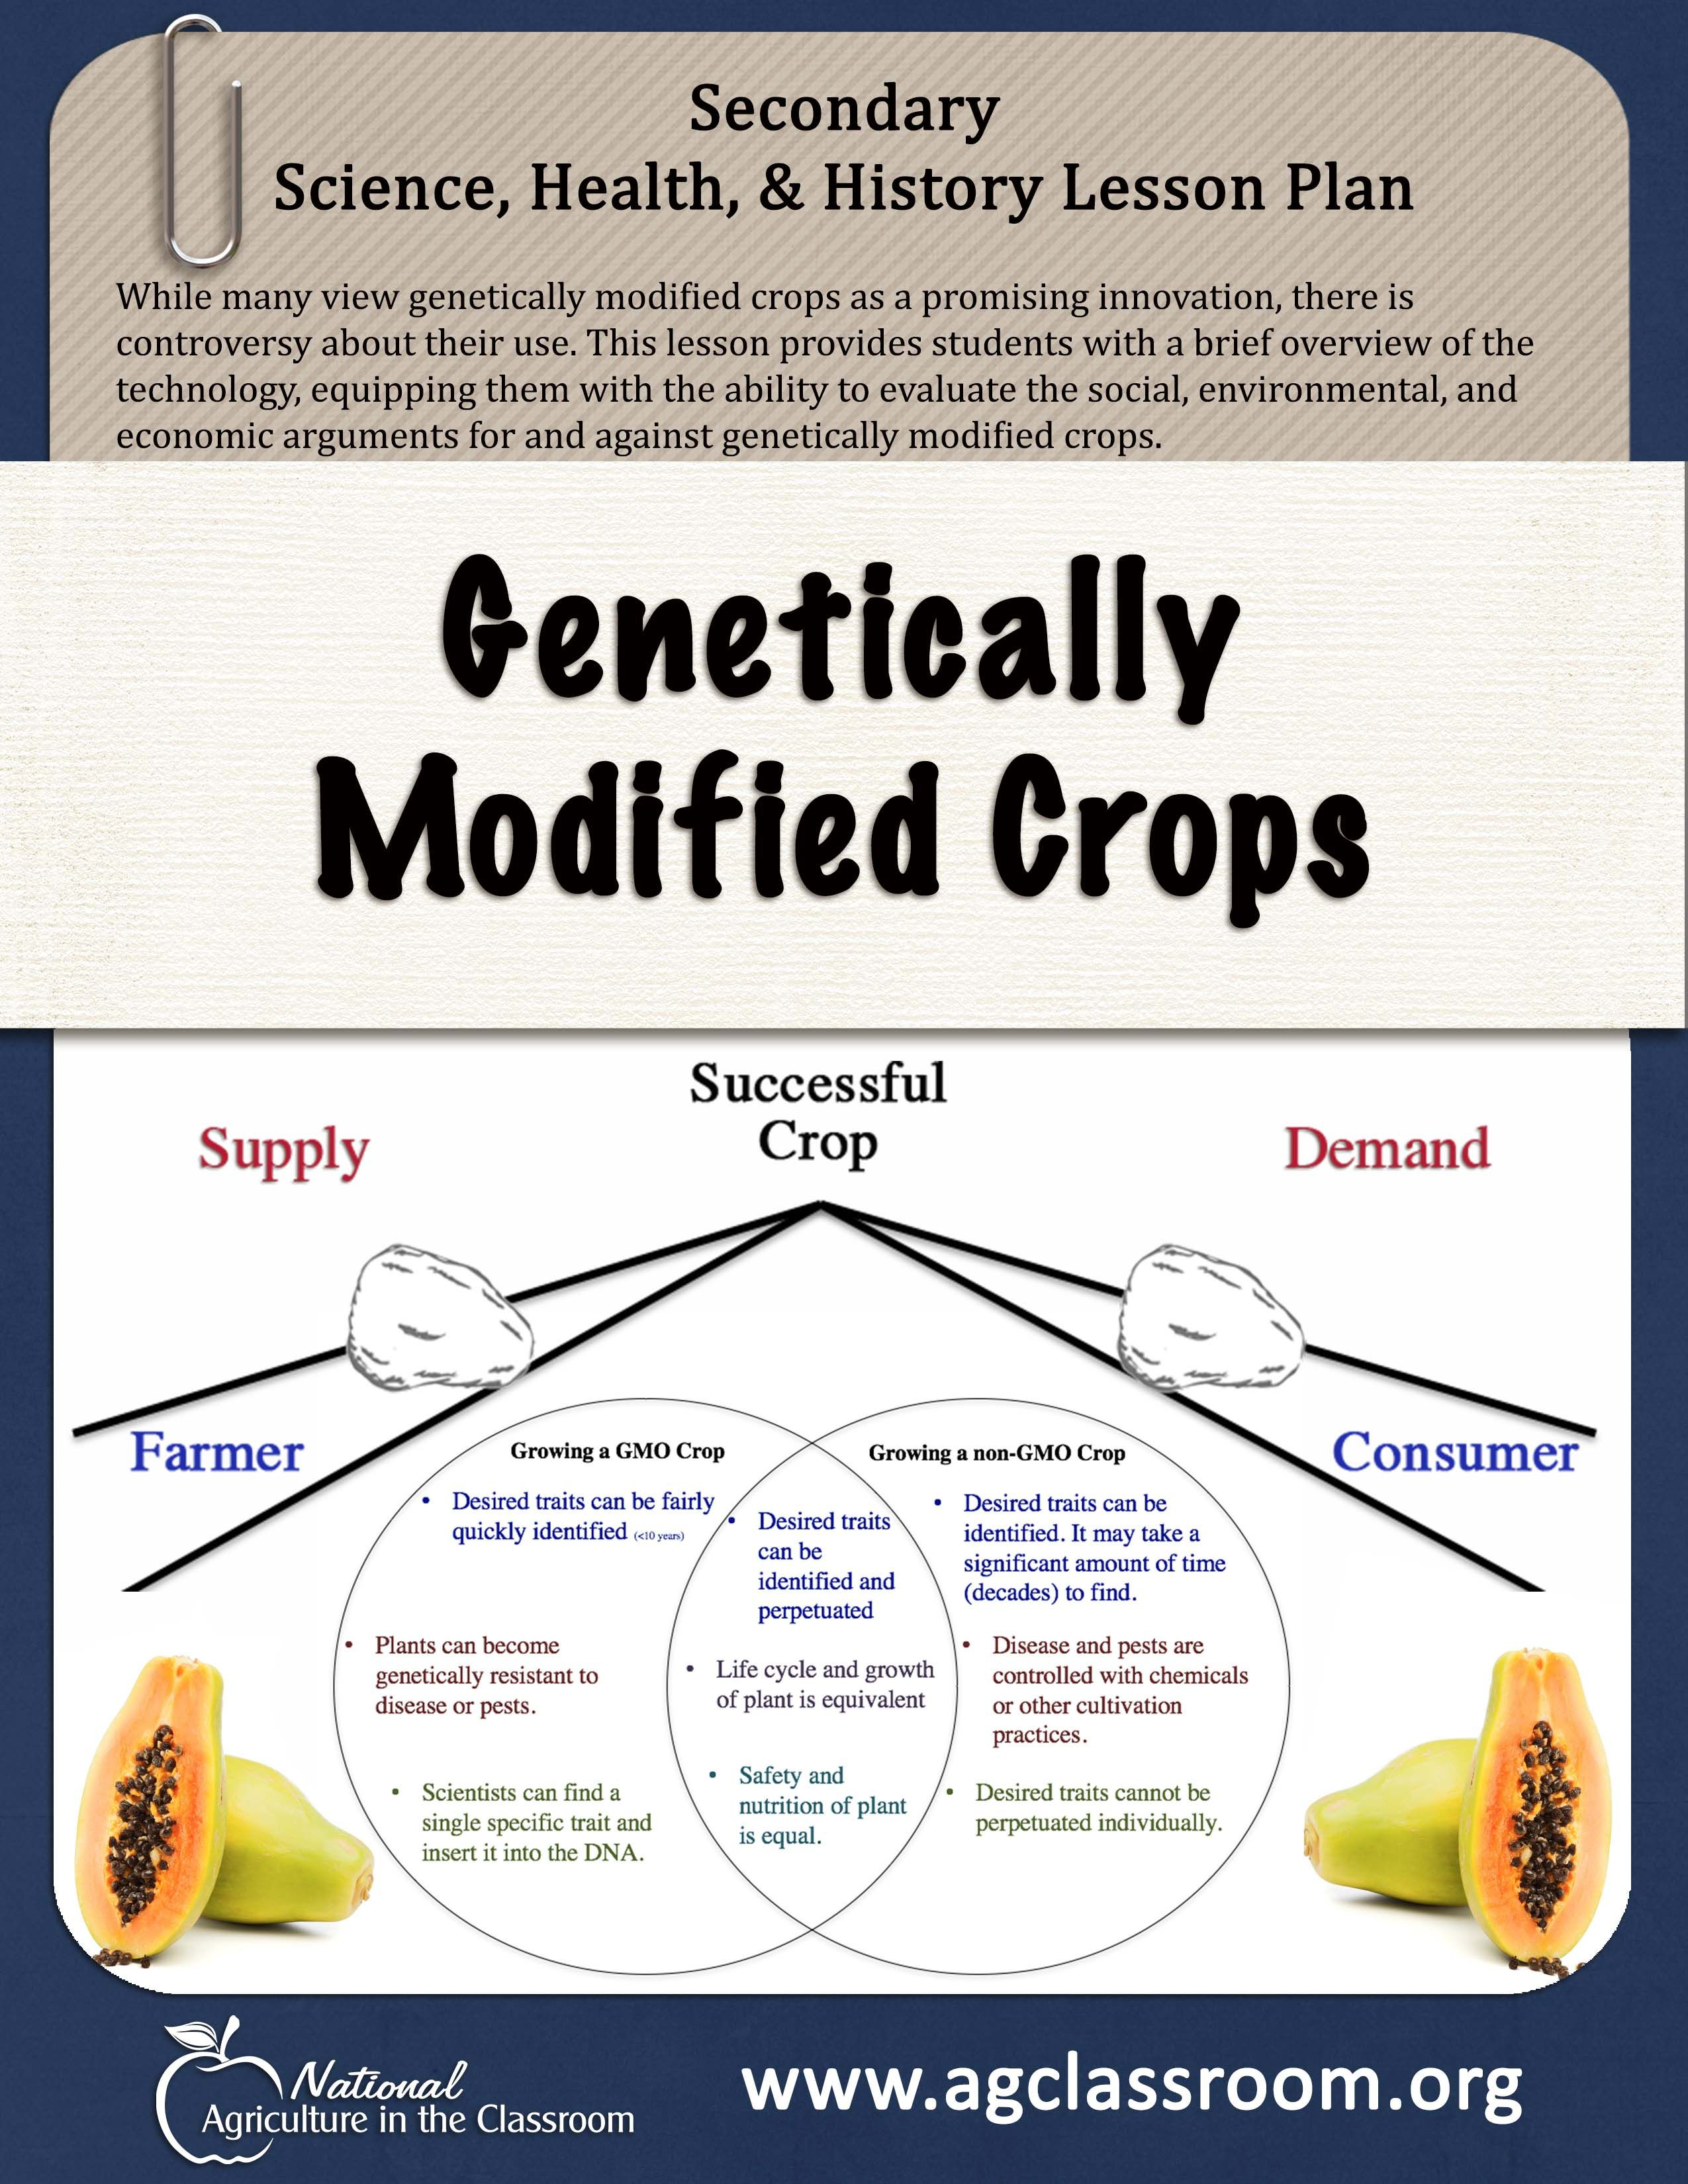 Gmos Are An Important Topic In Food Consumption And